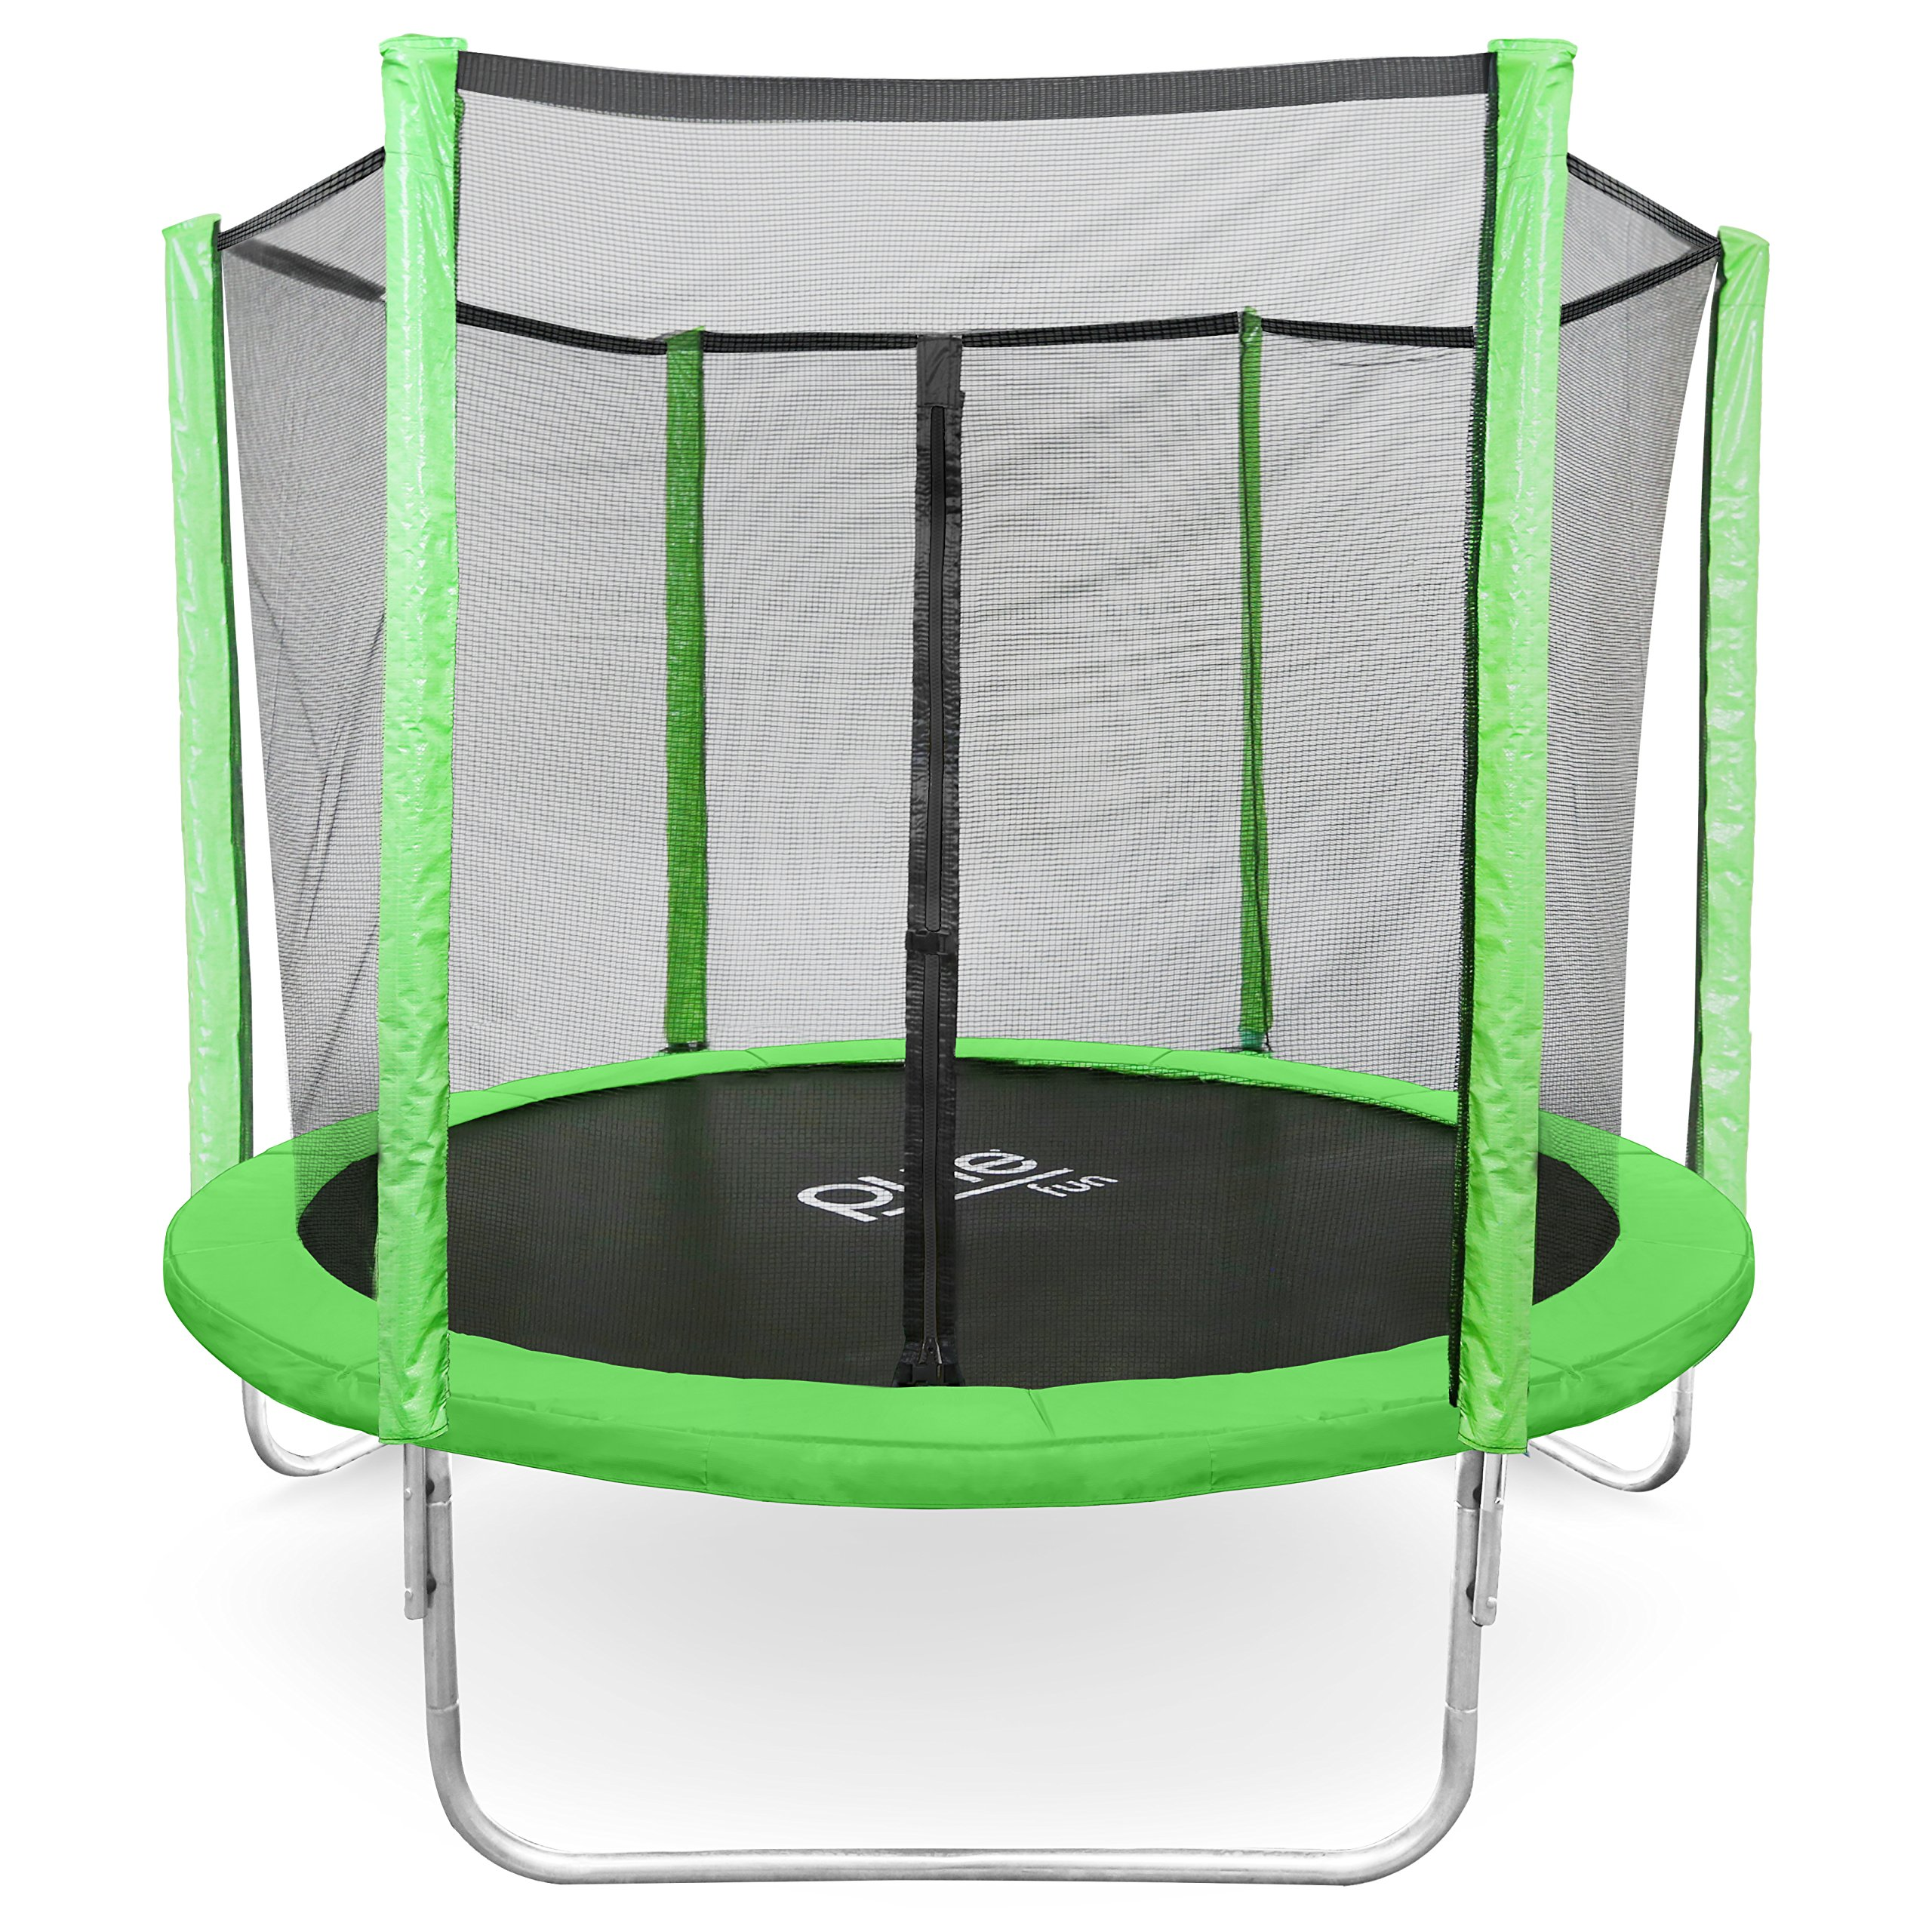 Pure Fun Dura-Bounce 8' Trampoline Set